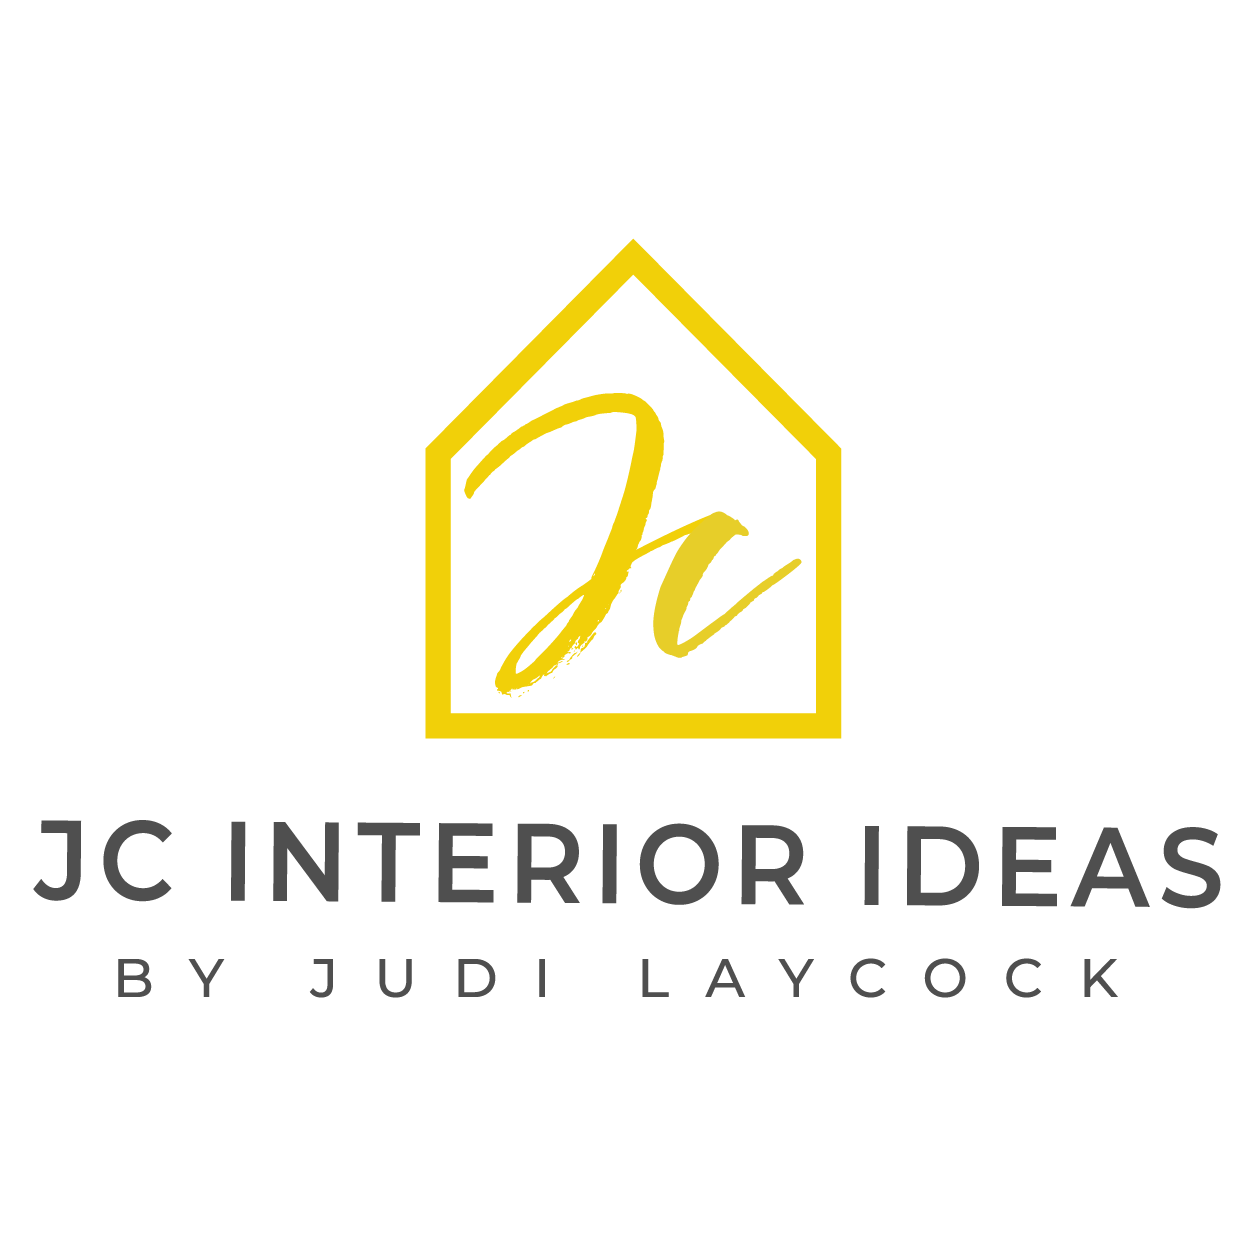 JC Interior Ideas